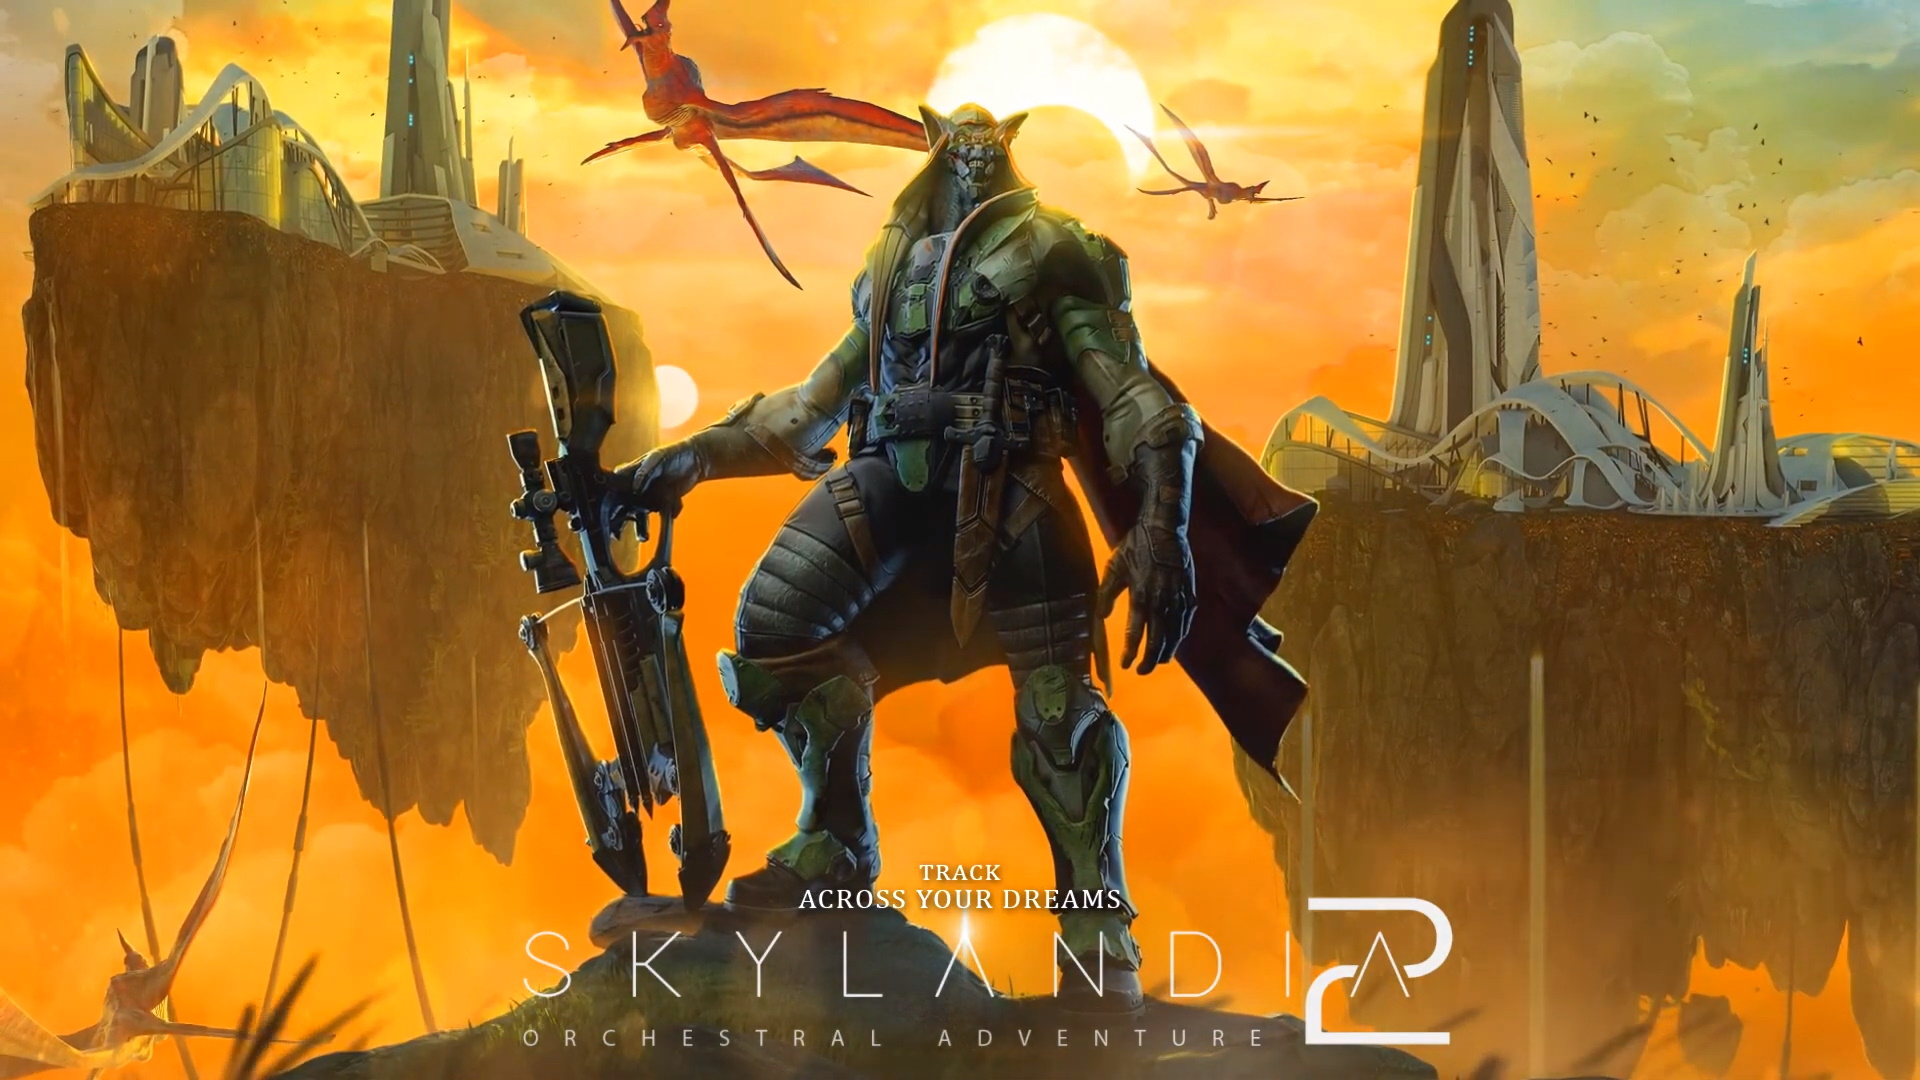 Jolt Trailer Music/BMG Production Music - Music for album Skylandia 2